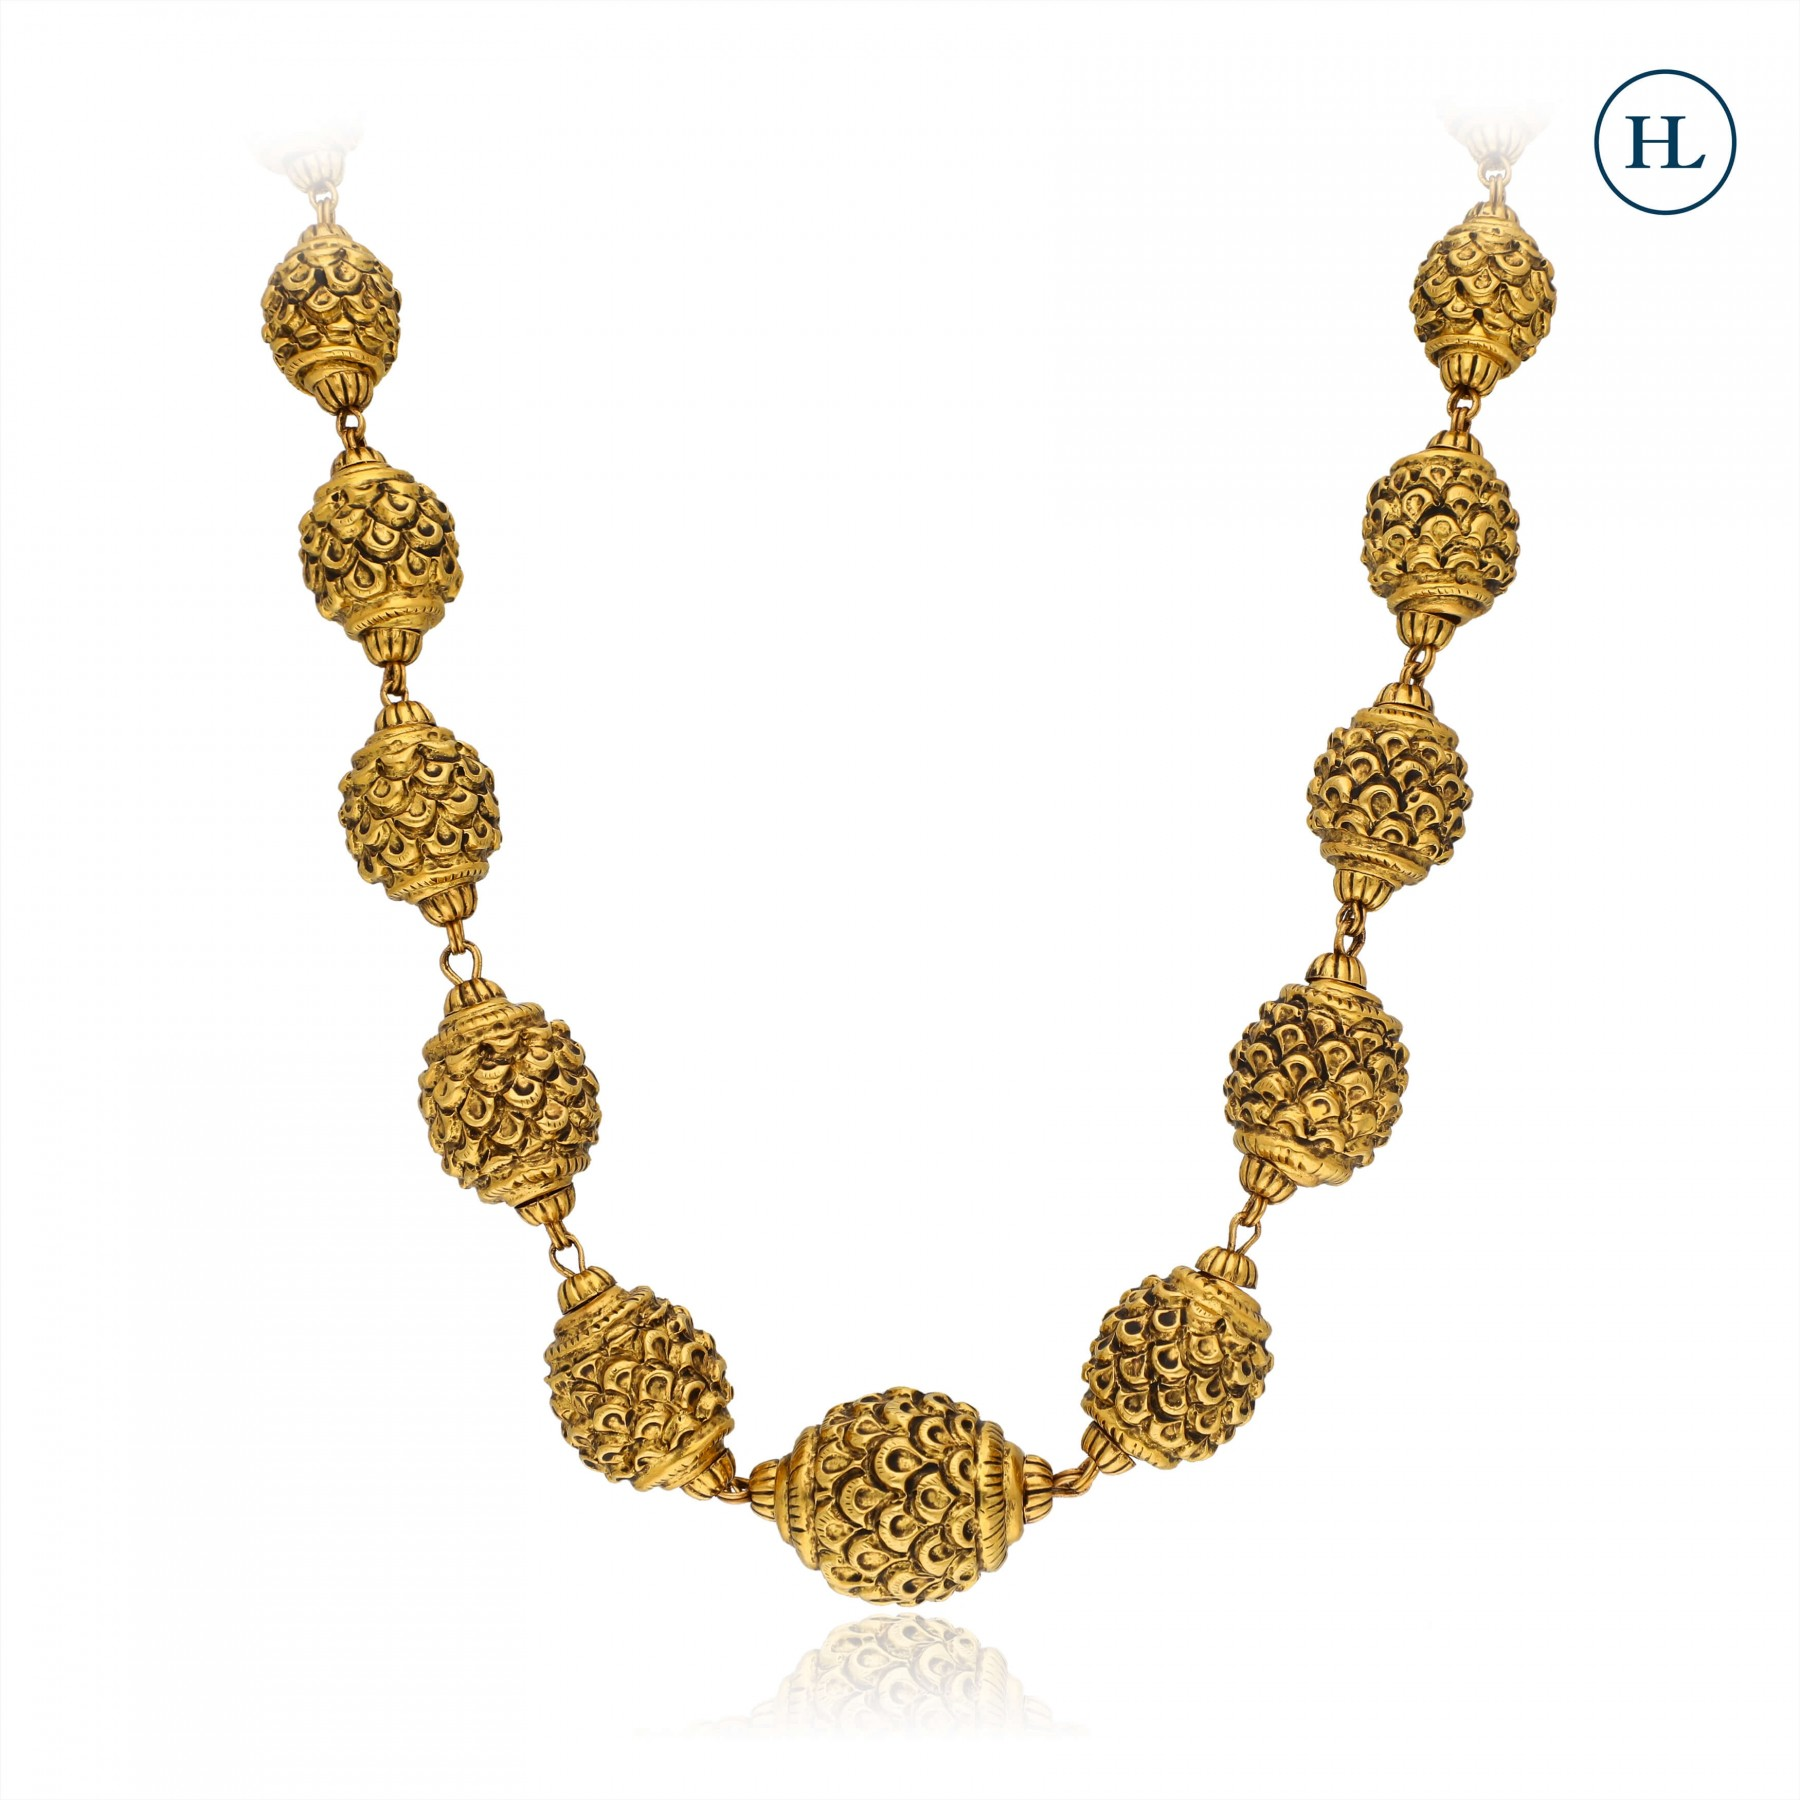 Antique-Styled Craft Gold Chain